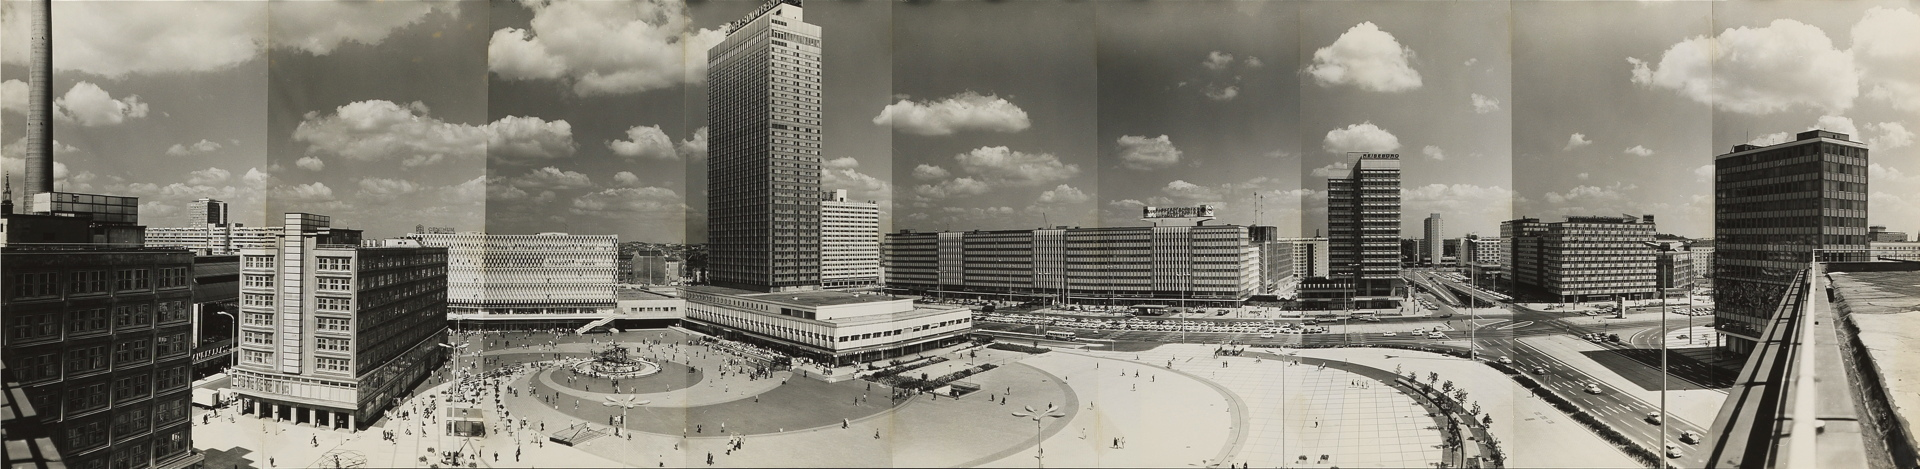 Panorama of Alexanderplatz, 1972. (Photo: Heinz Lieber © Legal successors Heinz Lieber)